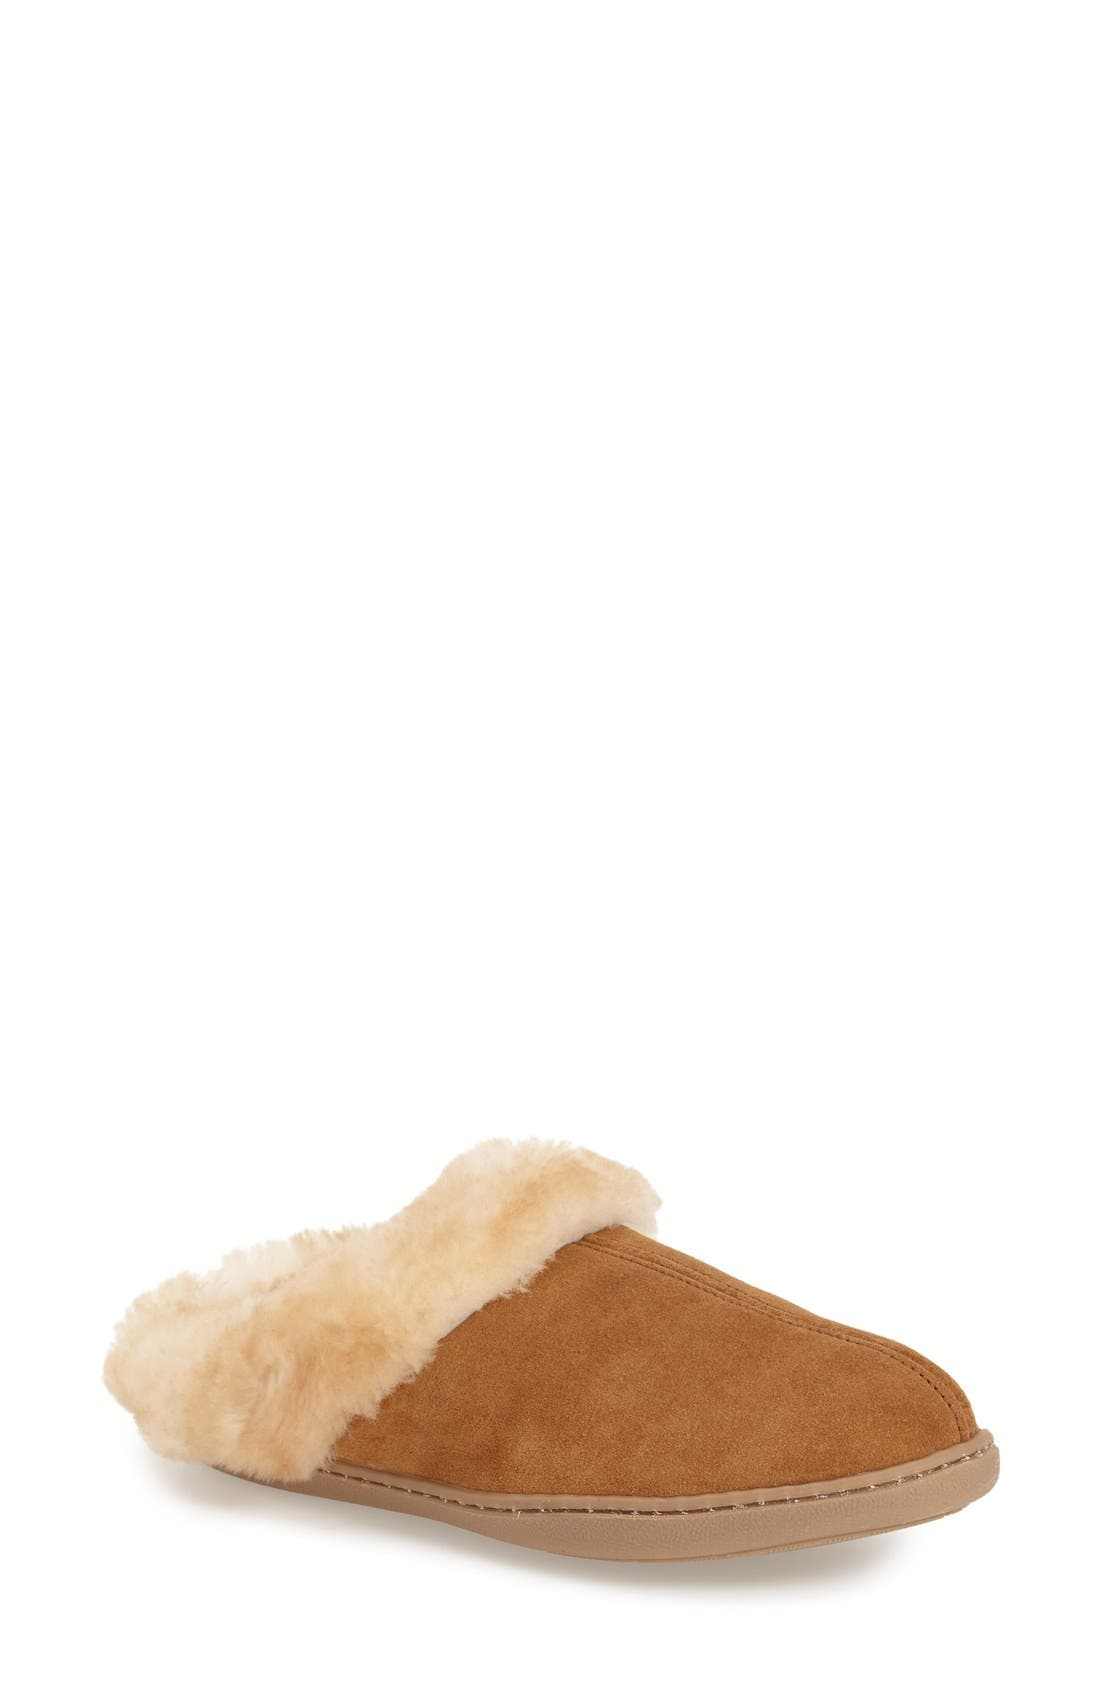 Sheepskin Mule Slipper,                             Main thumbnail 1, color,                             Tan Suede